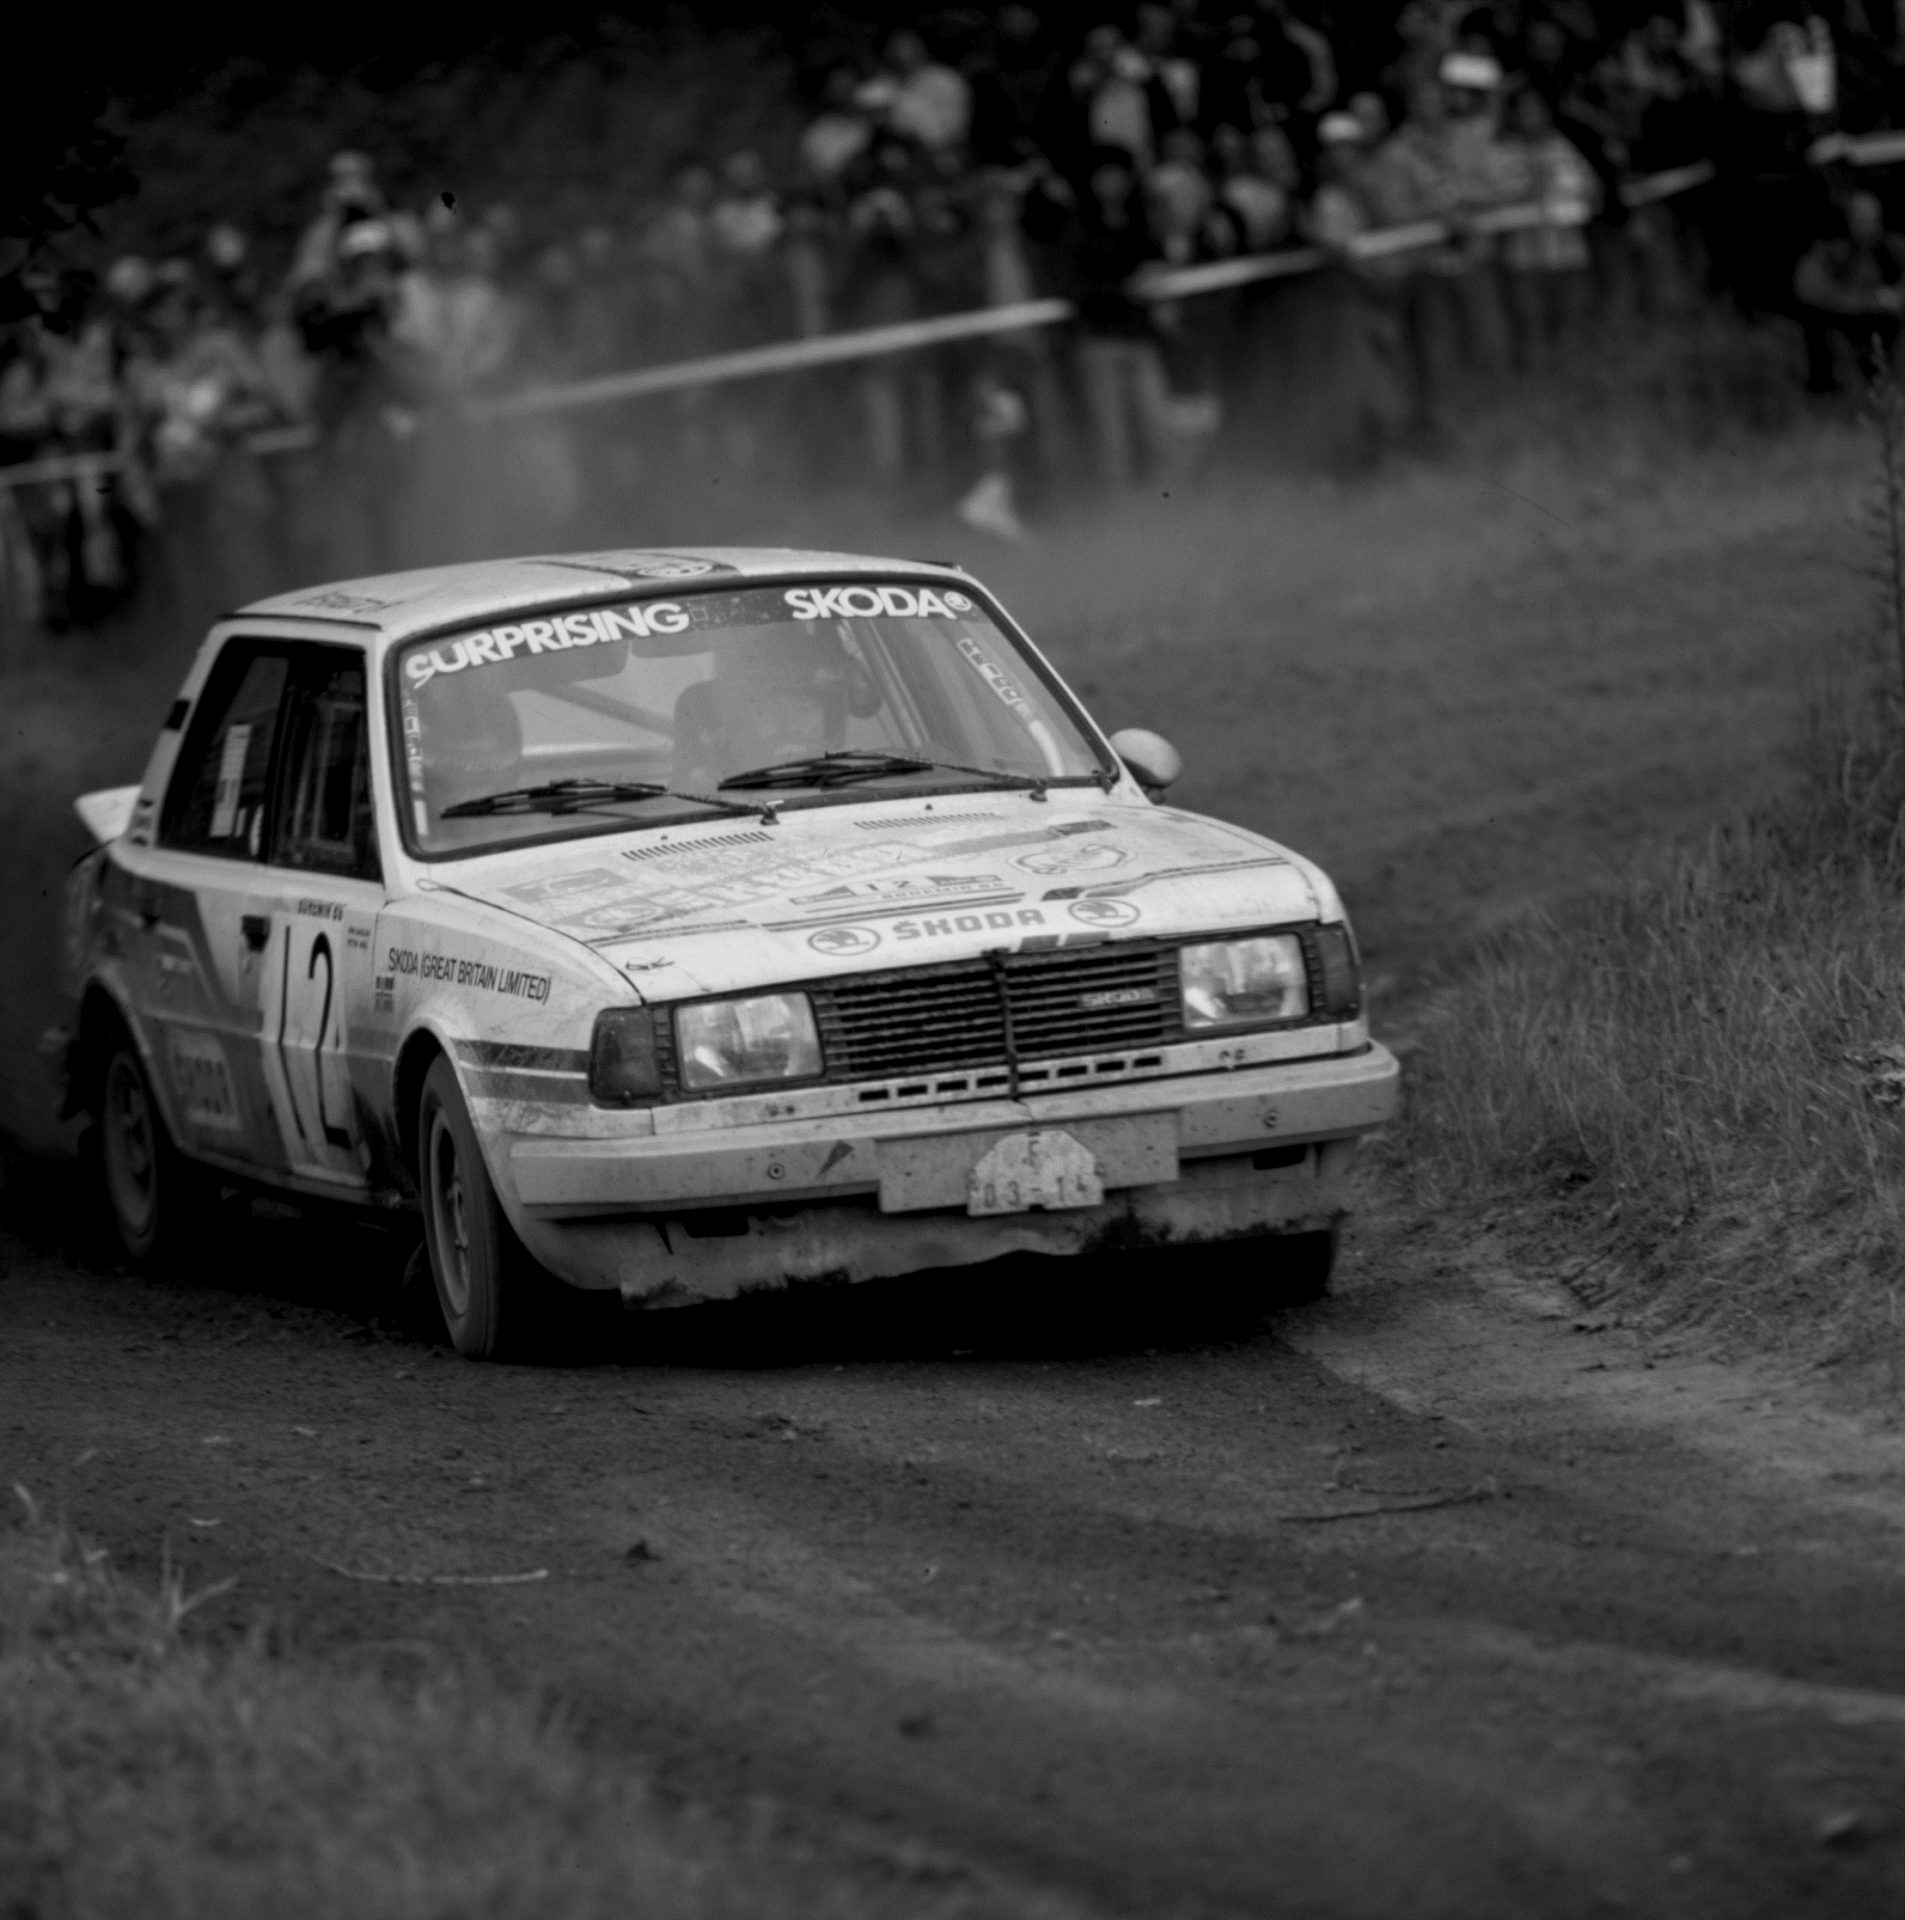 The Last of the Rear Engined Racers: Škoda 130 LR Group B Rally Car